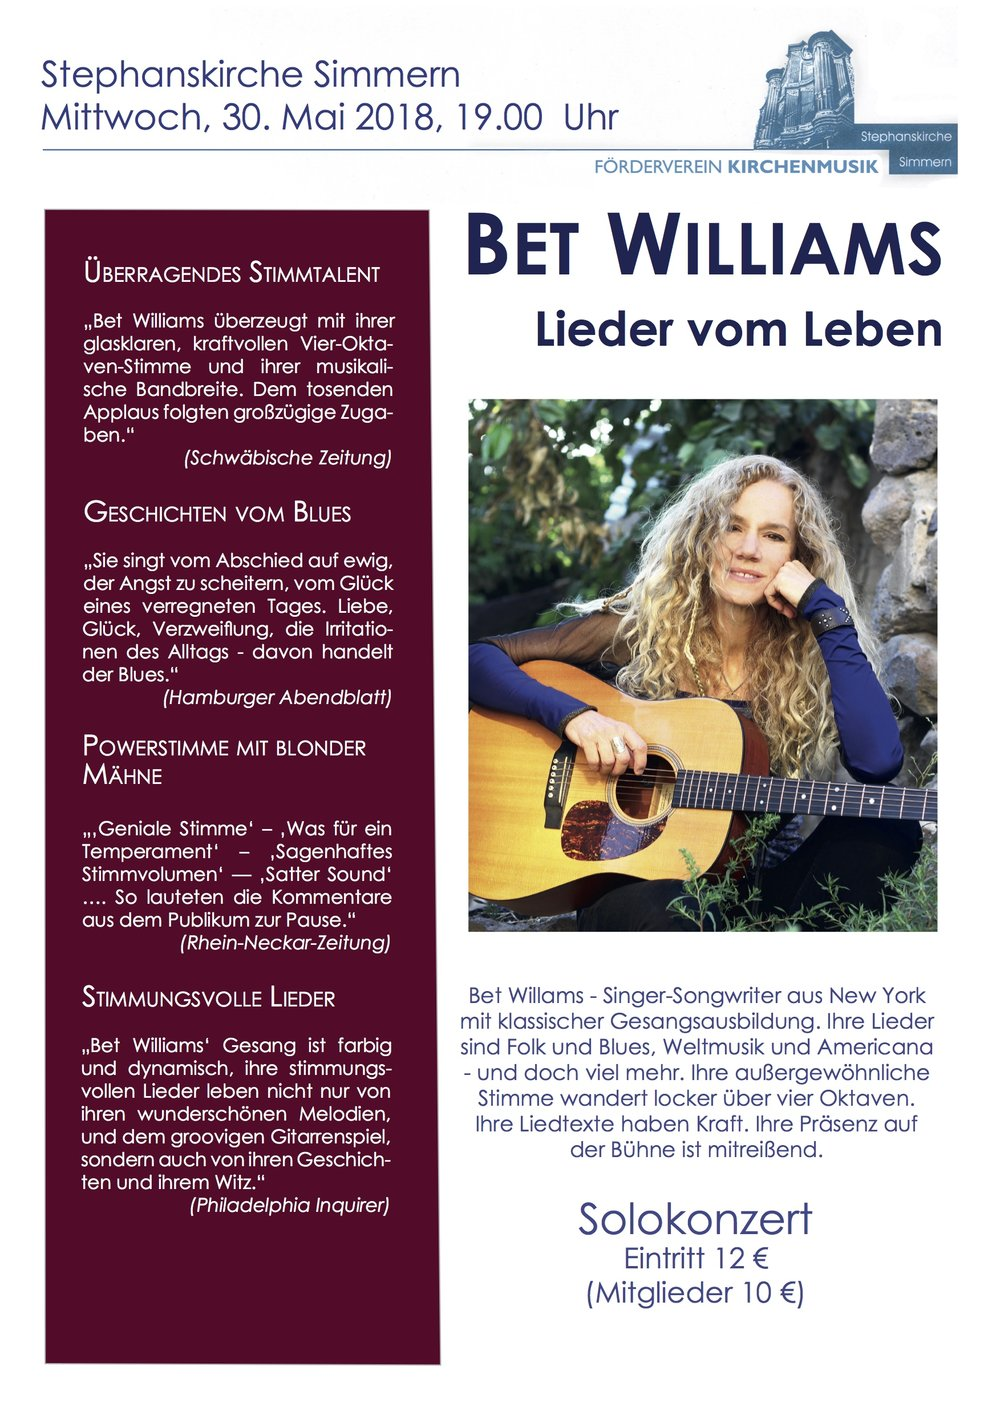 BetWilliams Simmern Poster j.peg.jpg